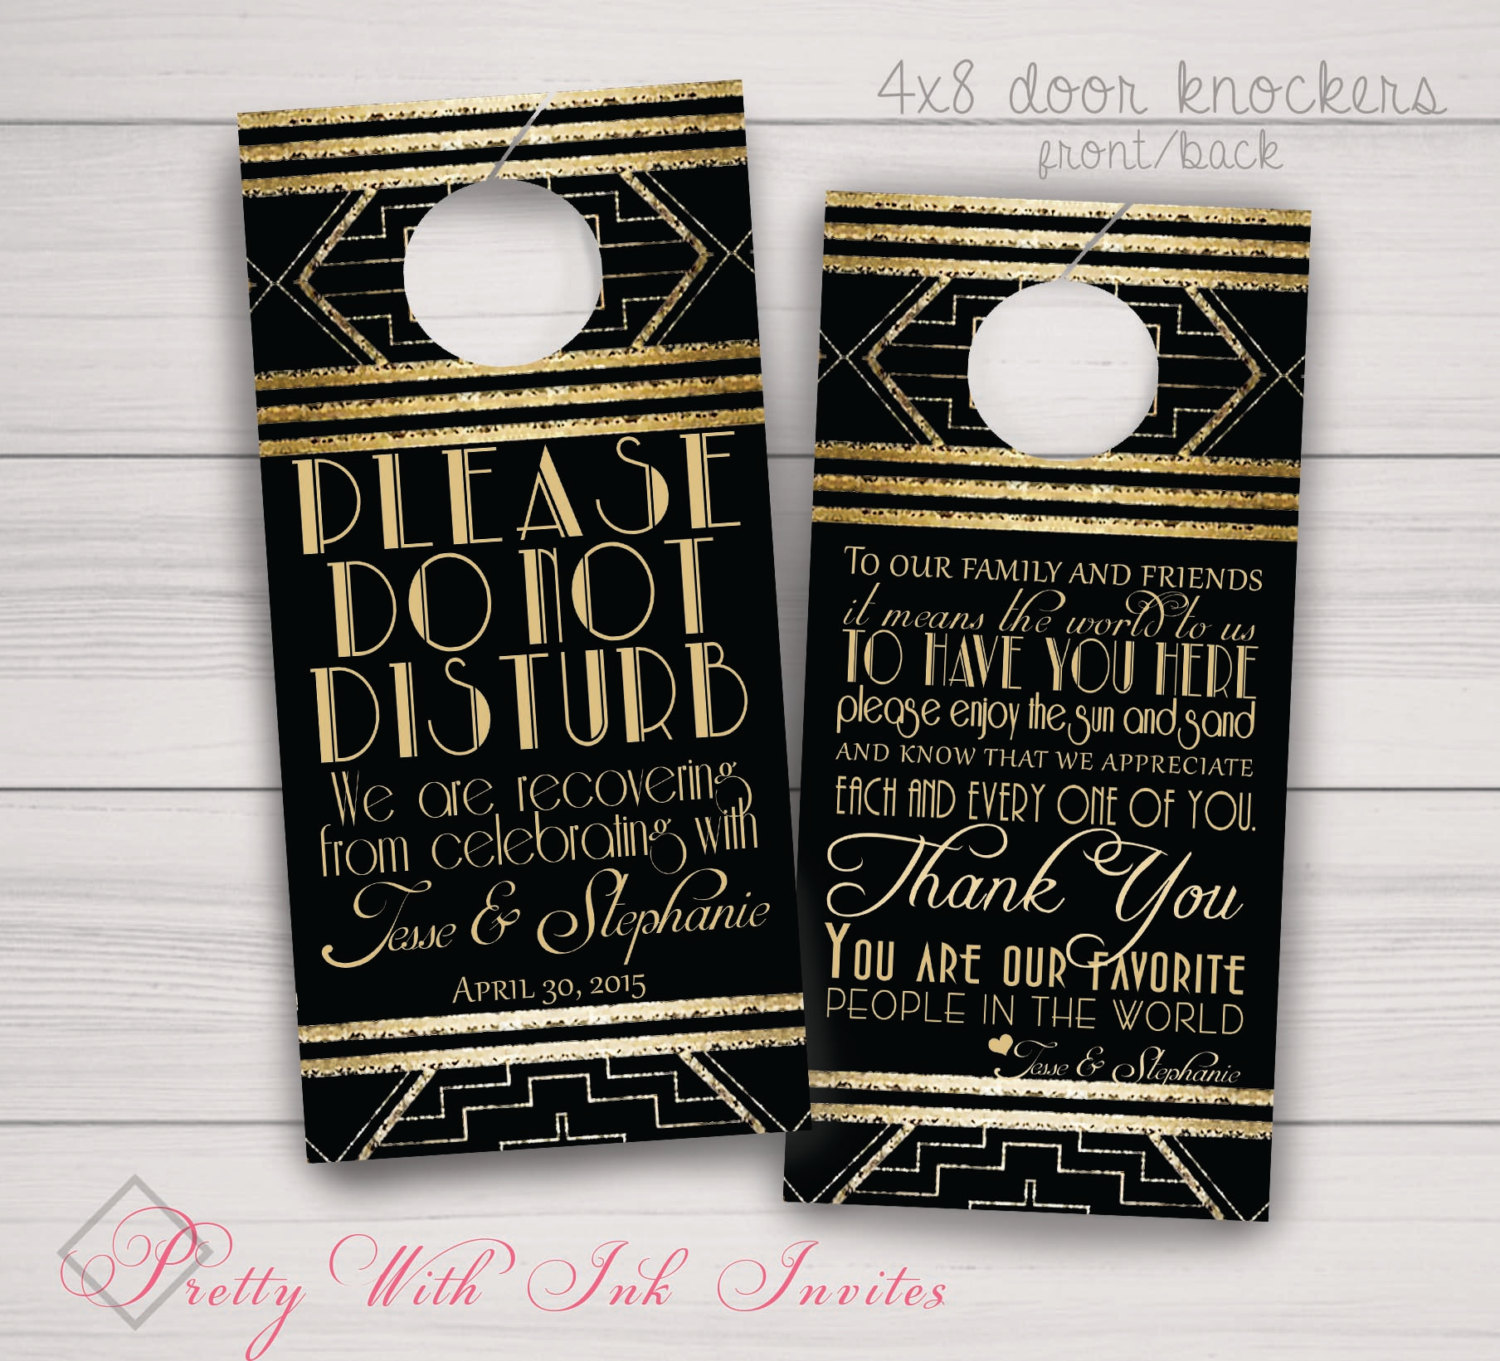 custom door knob hangers photo - 20